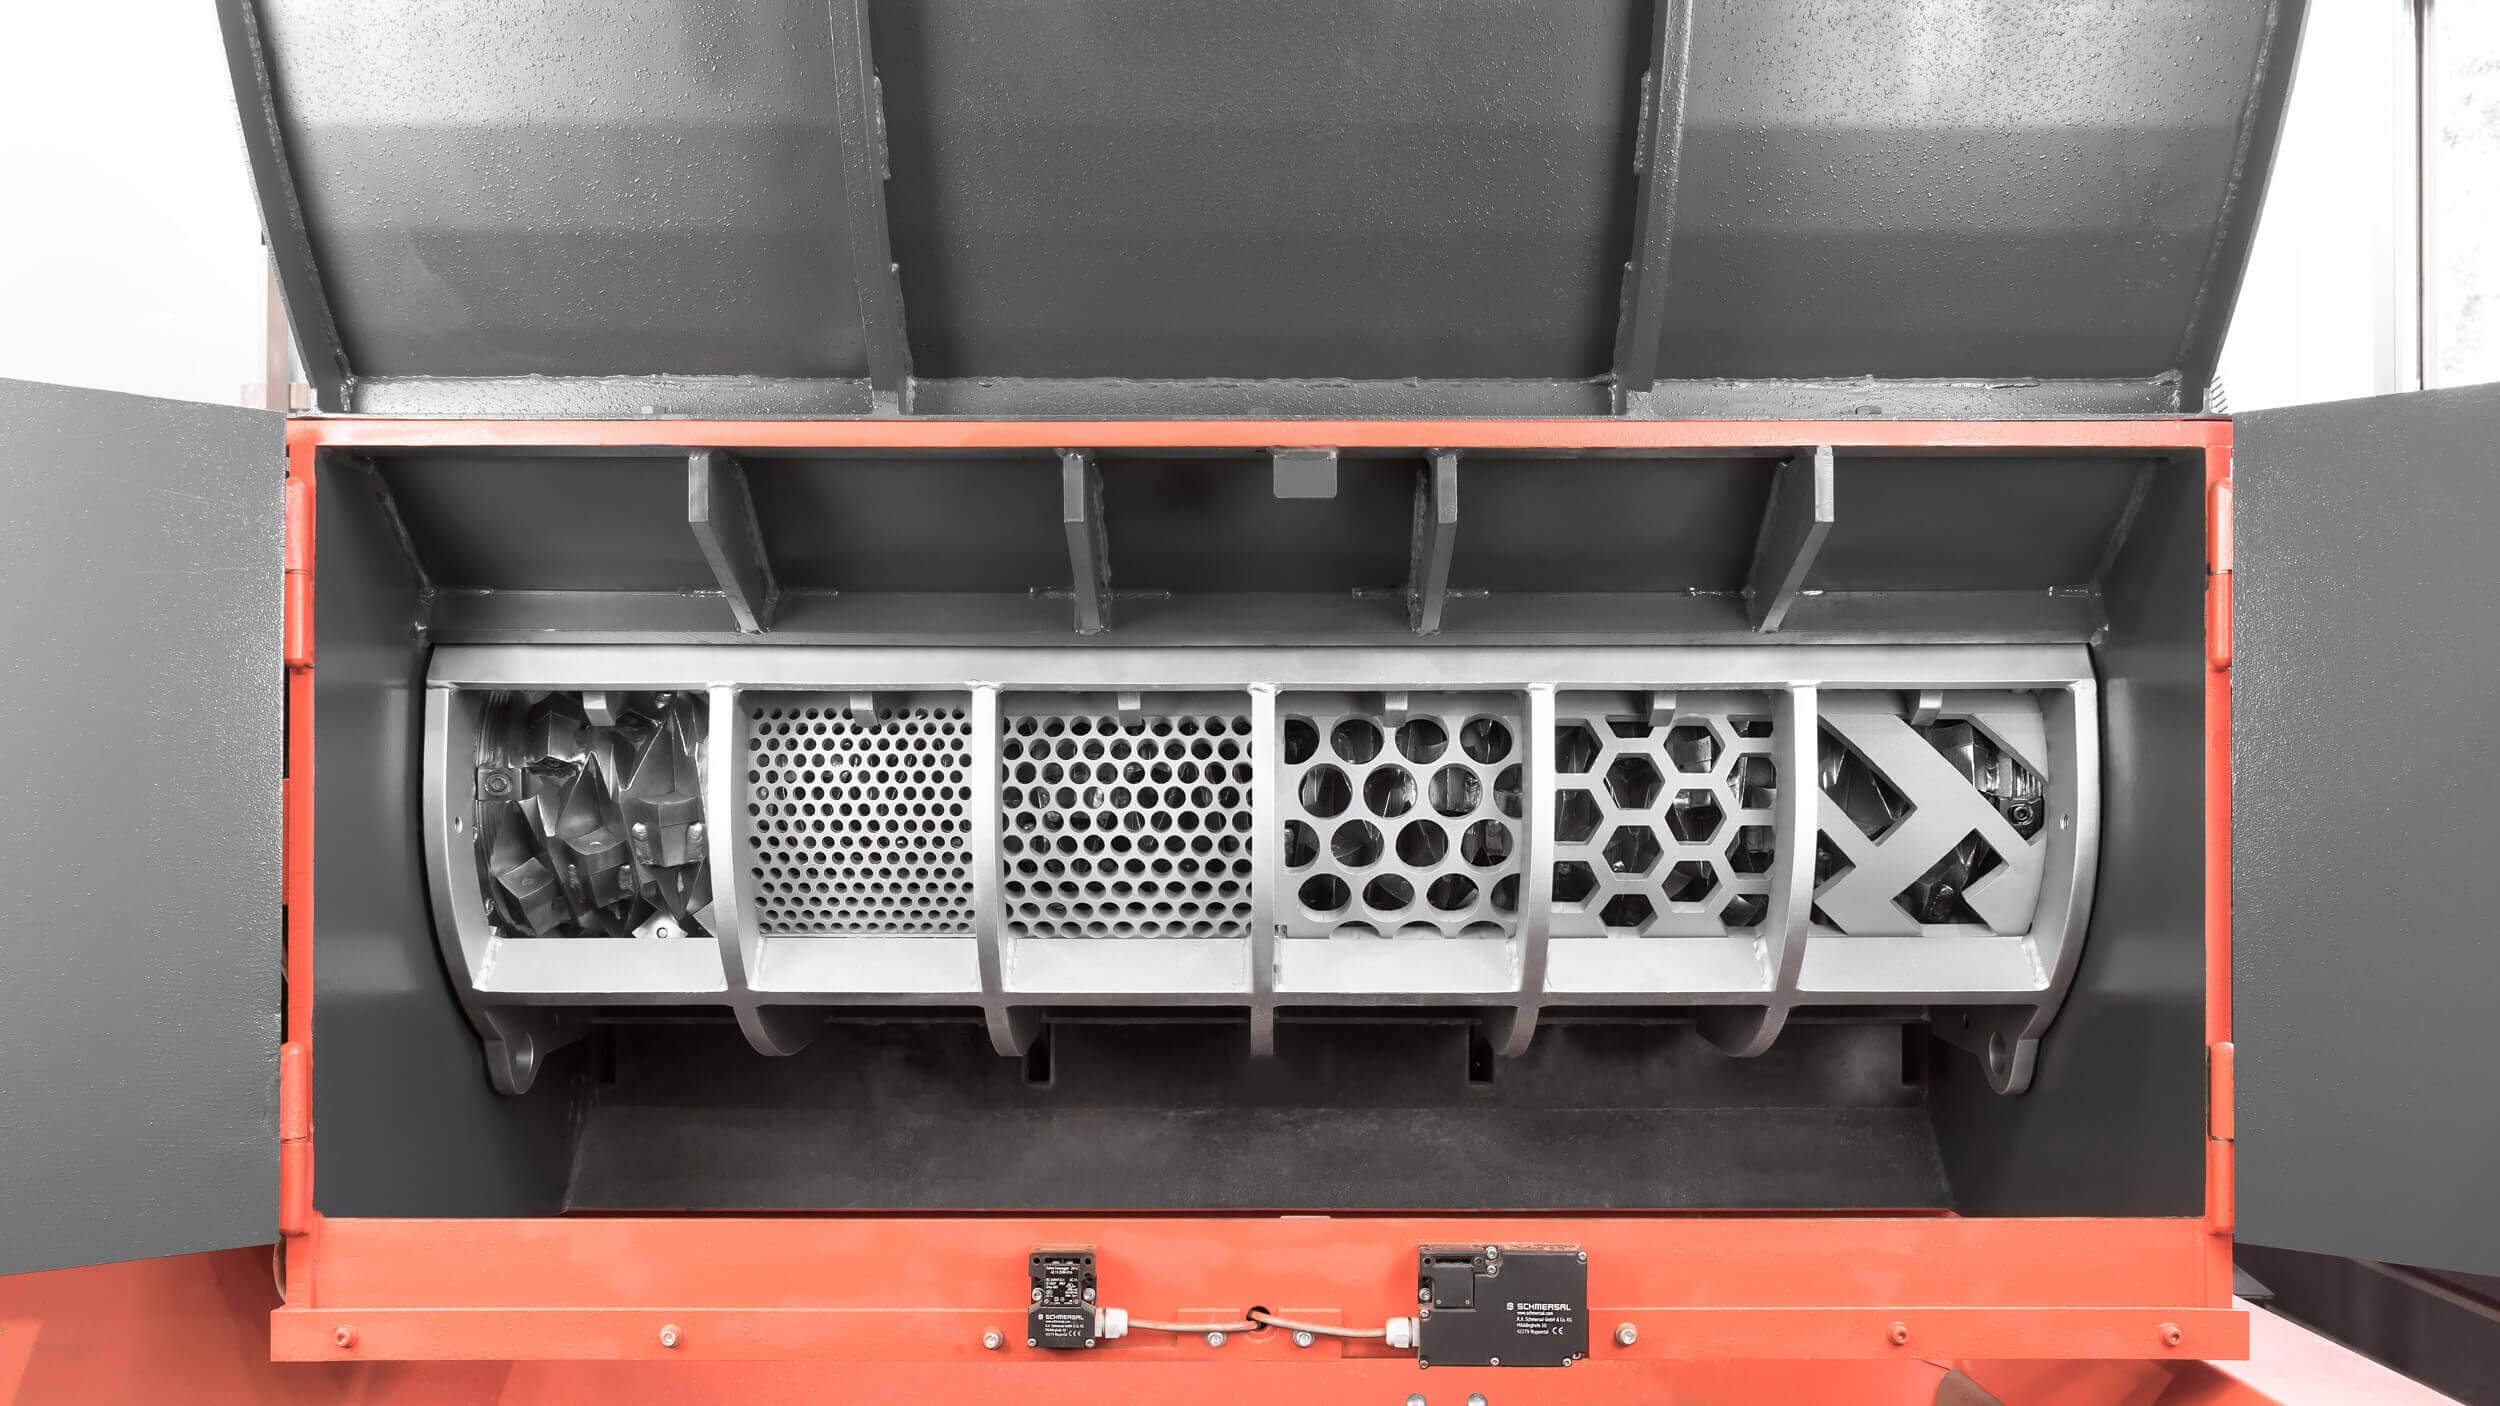 WEIMA Shredder with different screen options: without a screen, perforated screen in different hole sizes, honeycomb screen and zig-zag screen